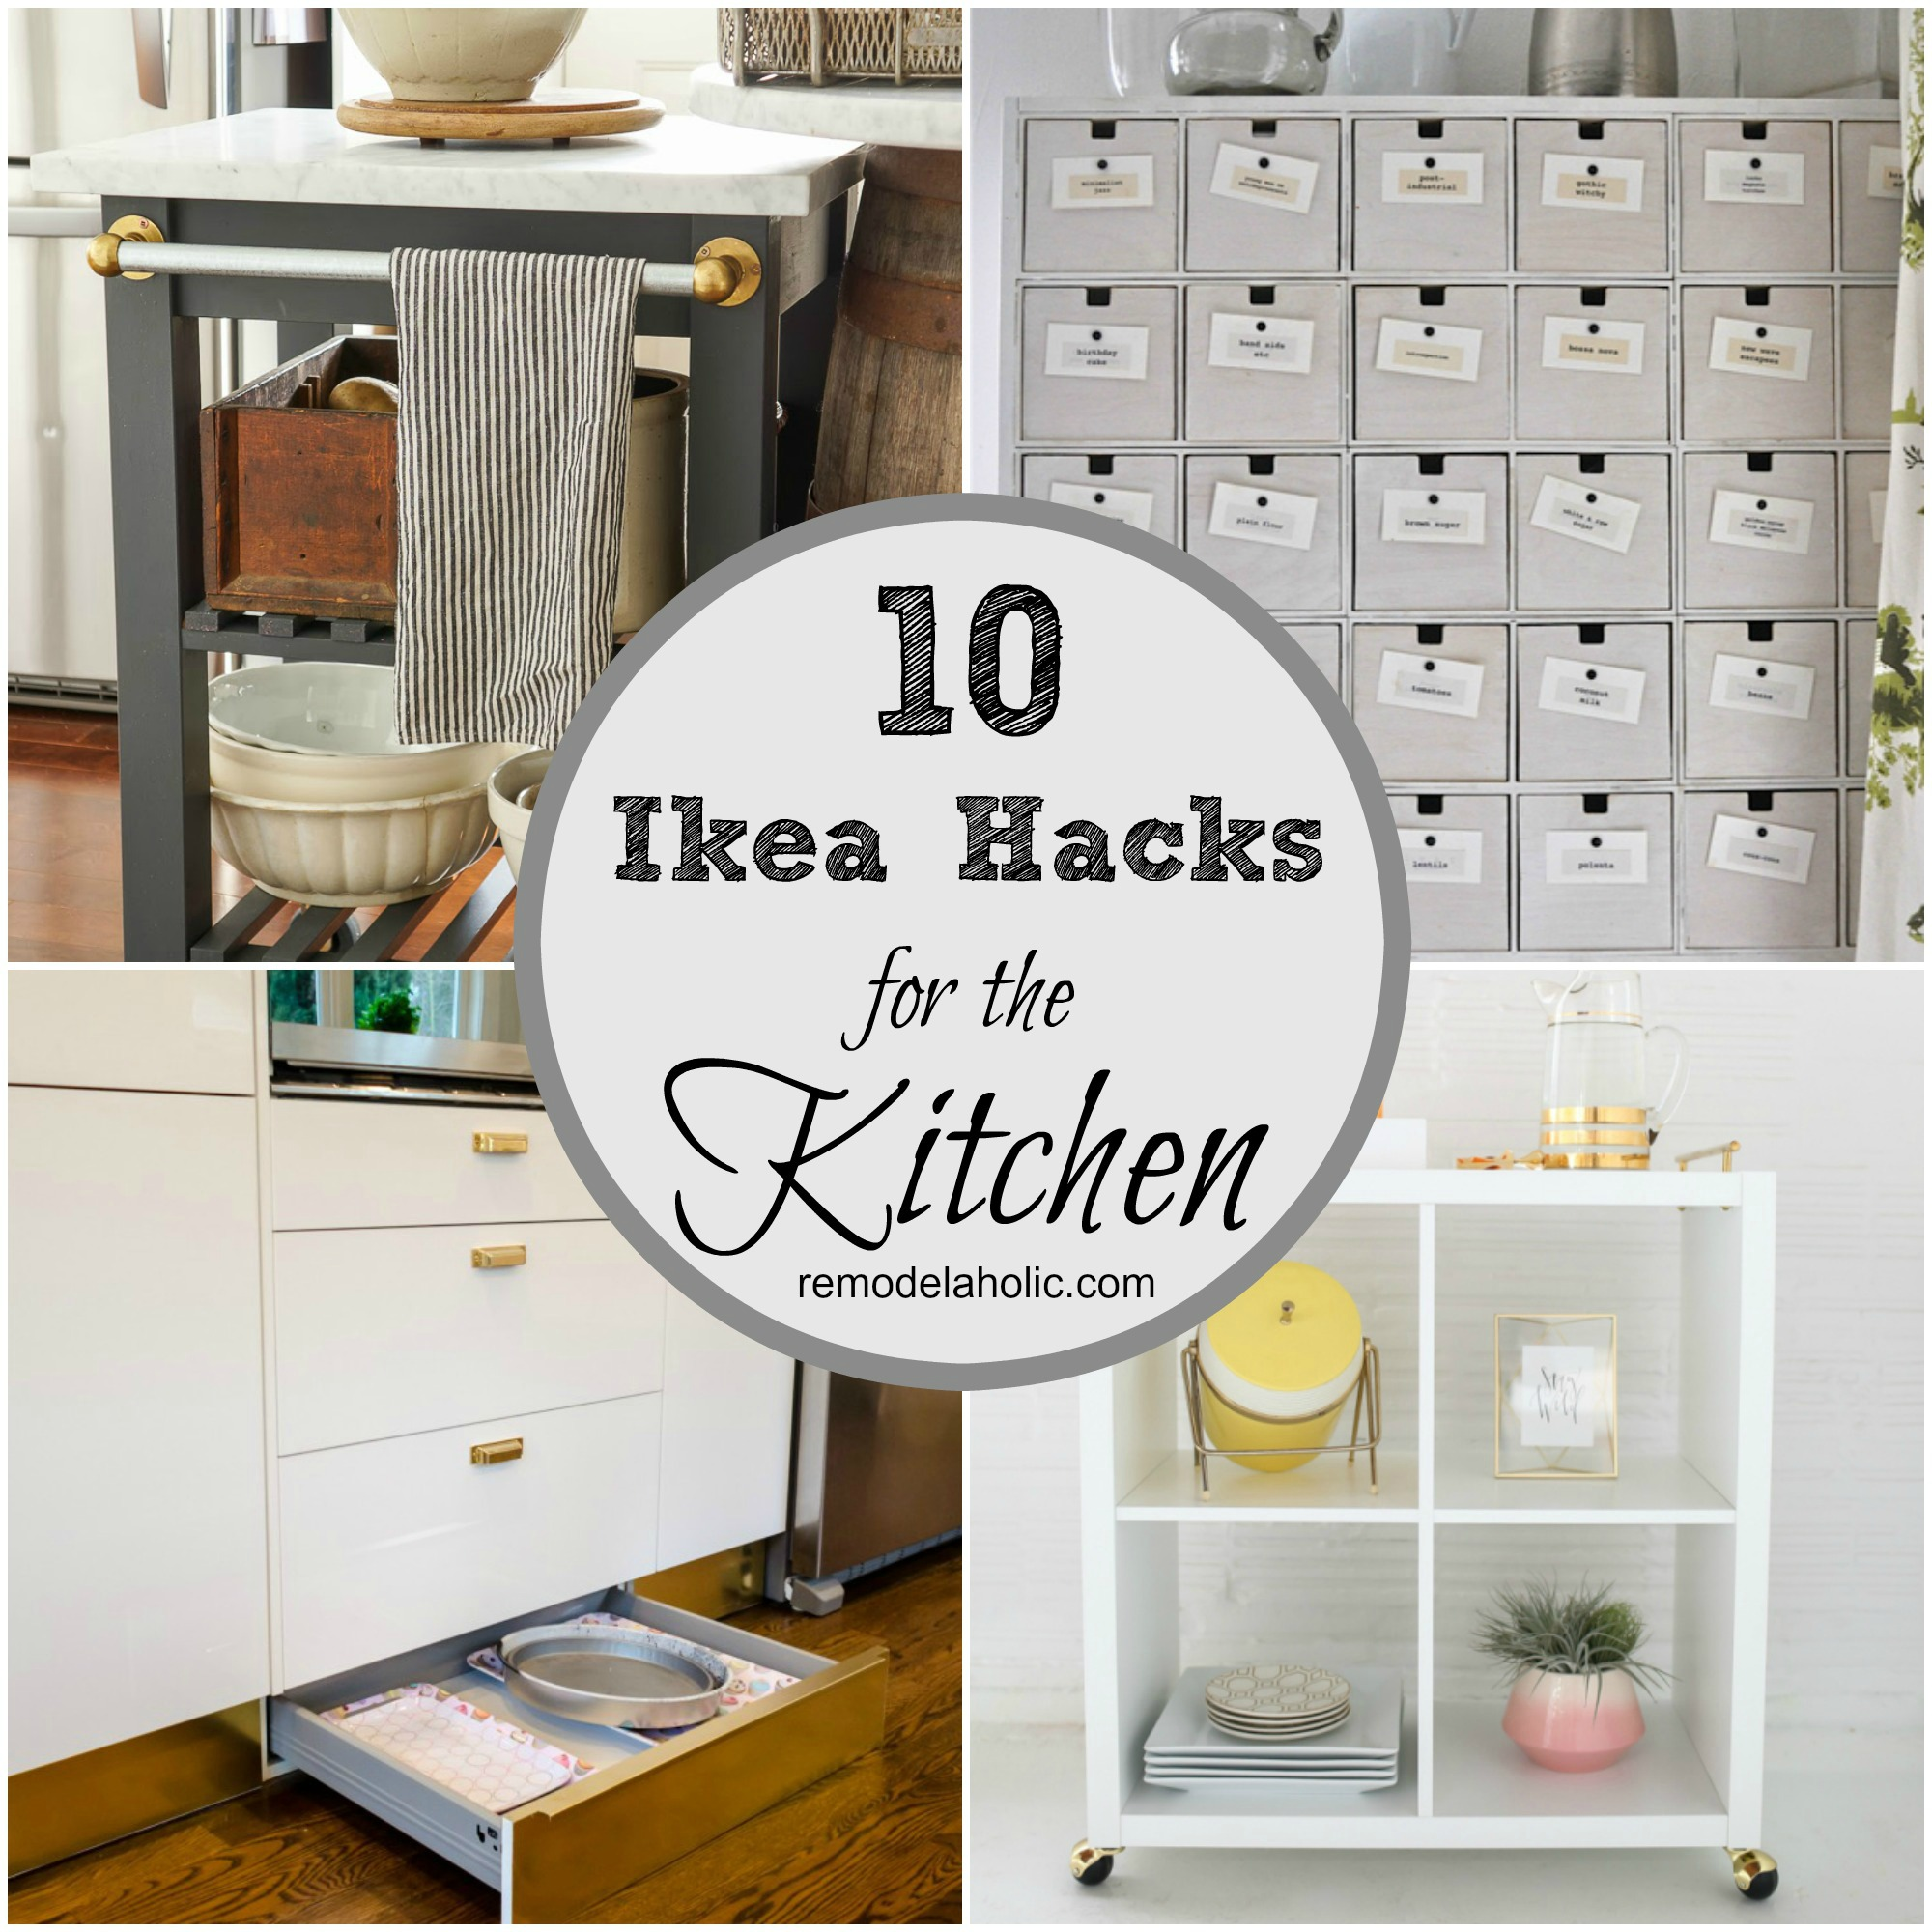 Ikea Expedit Youtube Remodelaholic 10 Ingenious Ikea Hacks For The Kitchen